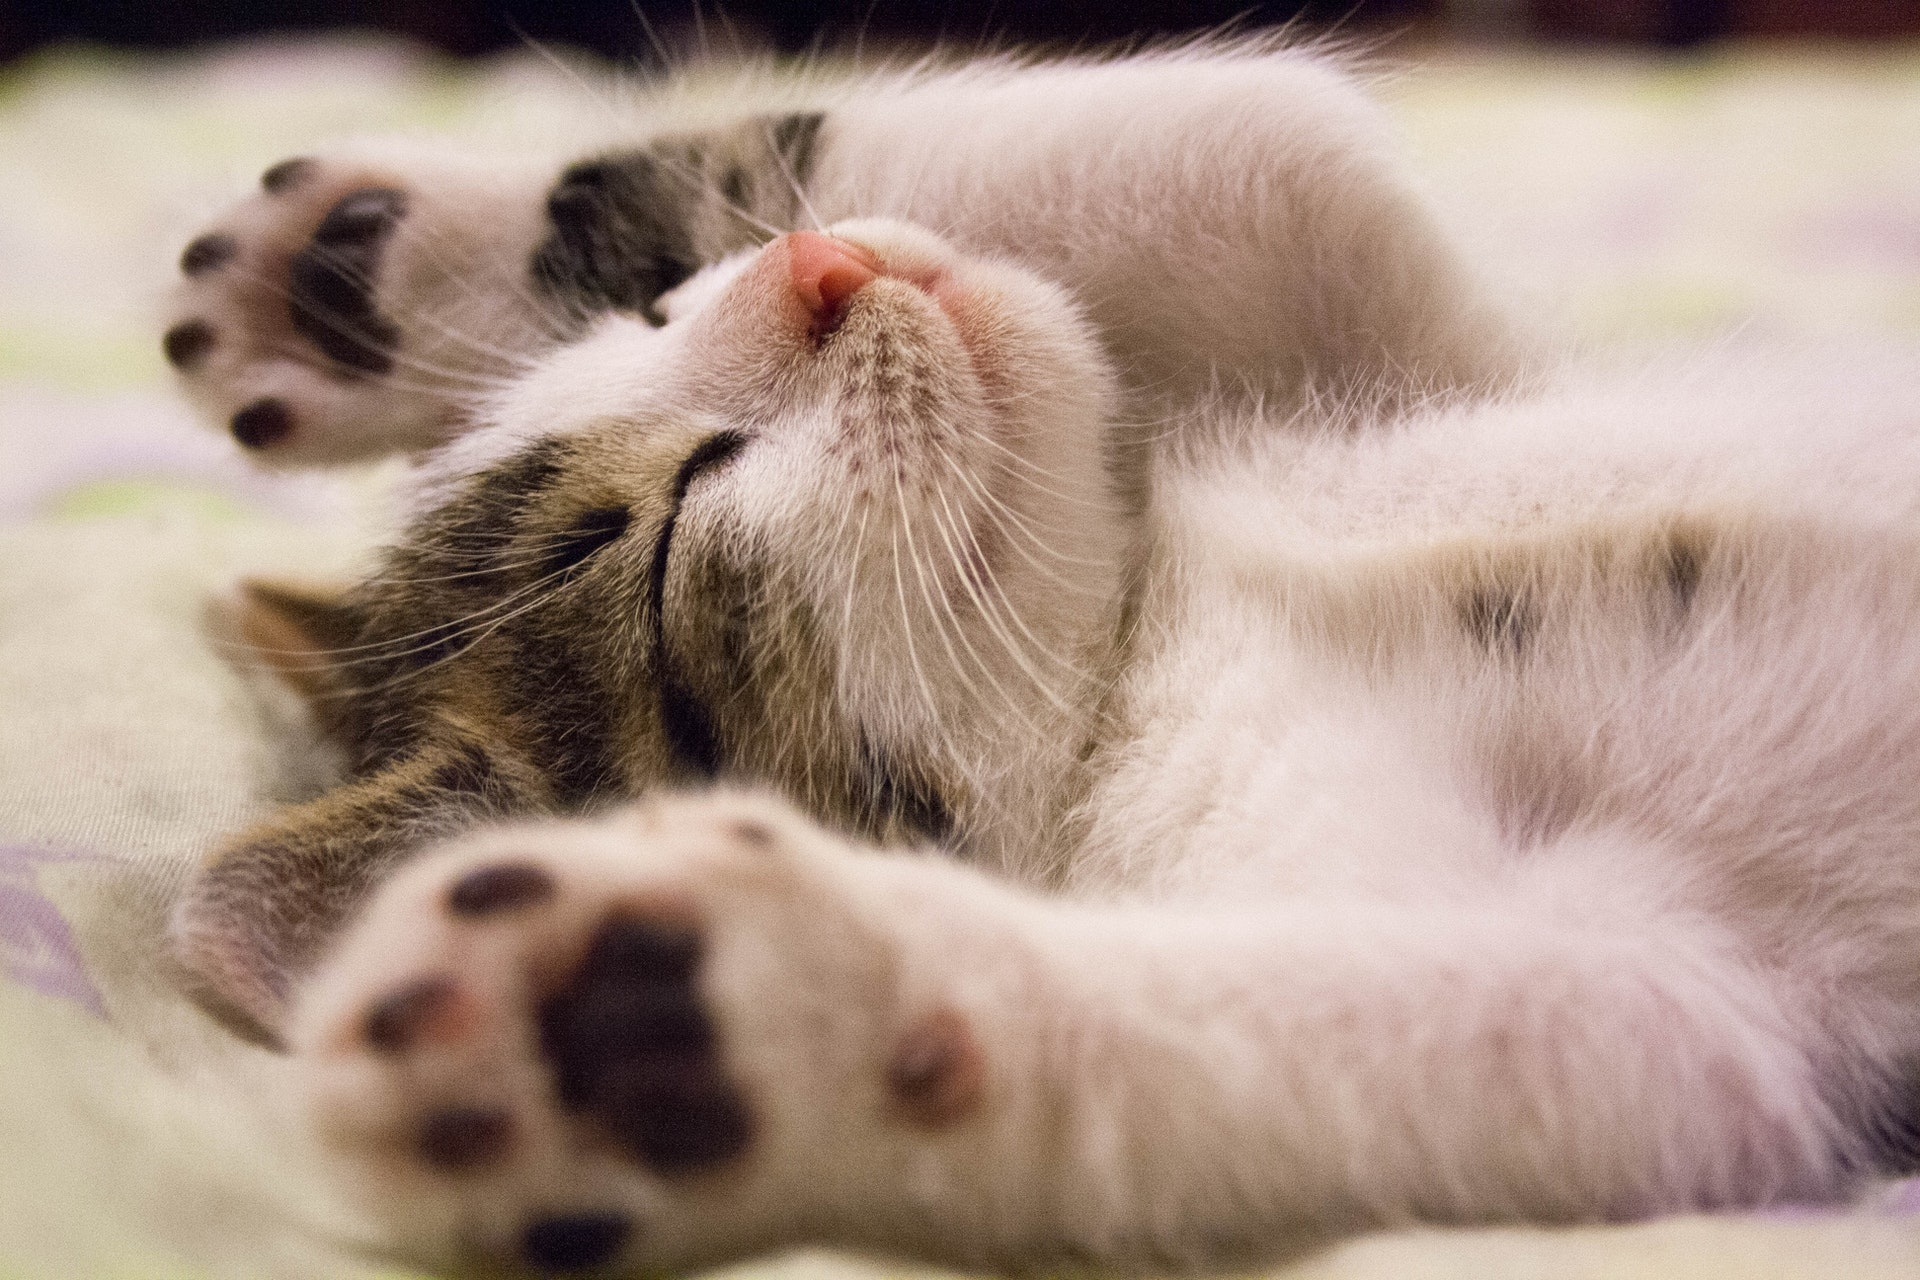 Sleeping kitten | How to Introduce Your Foster Kitten to Your Home